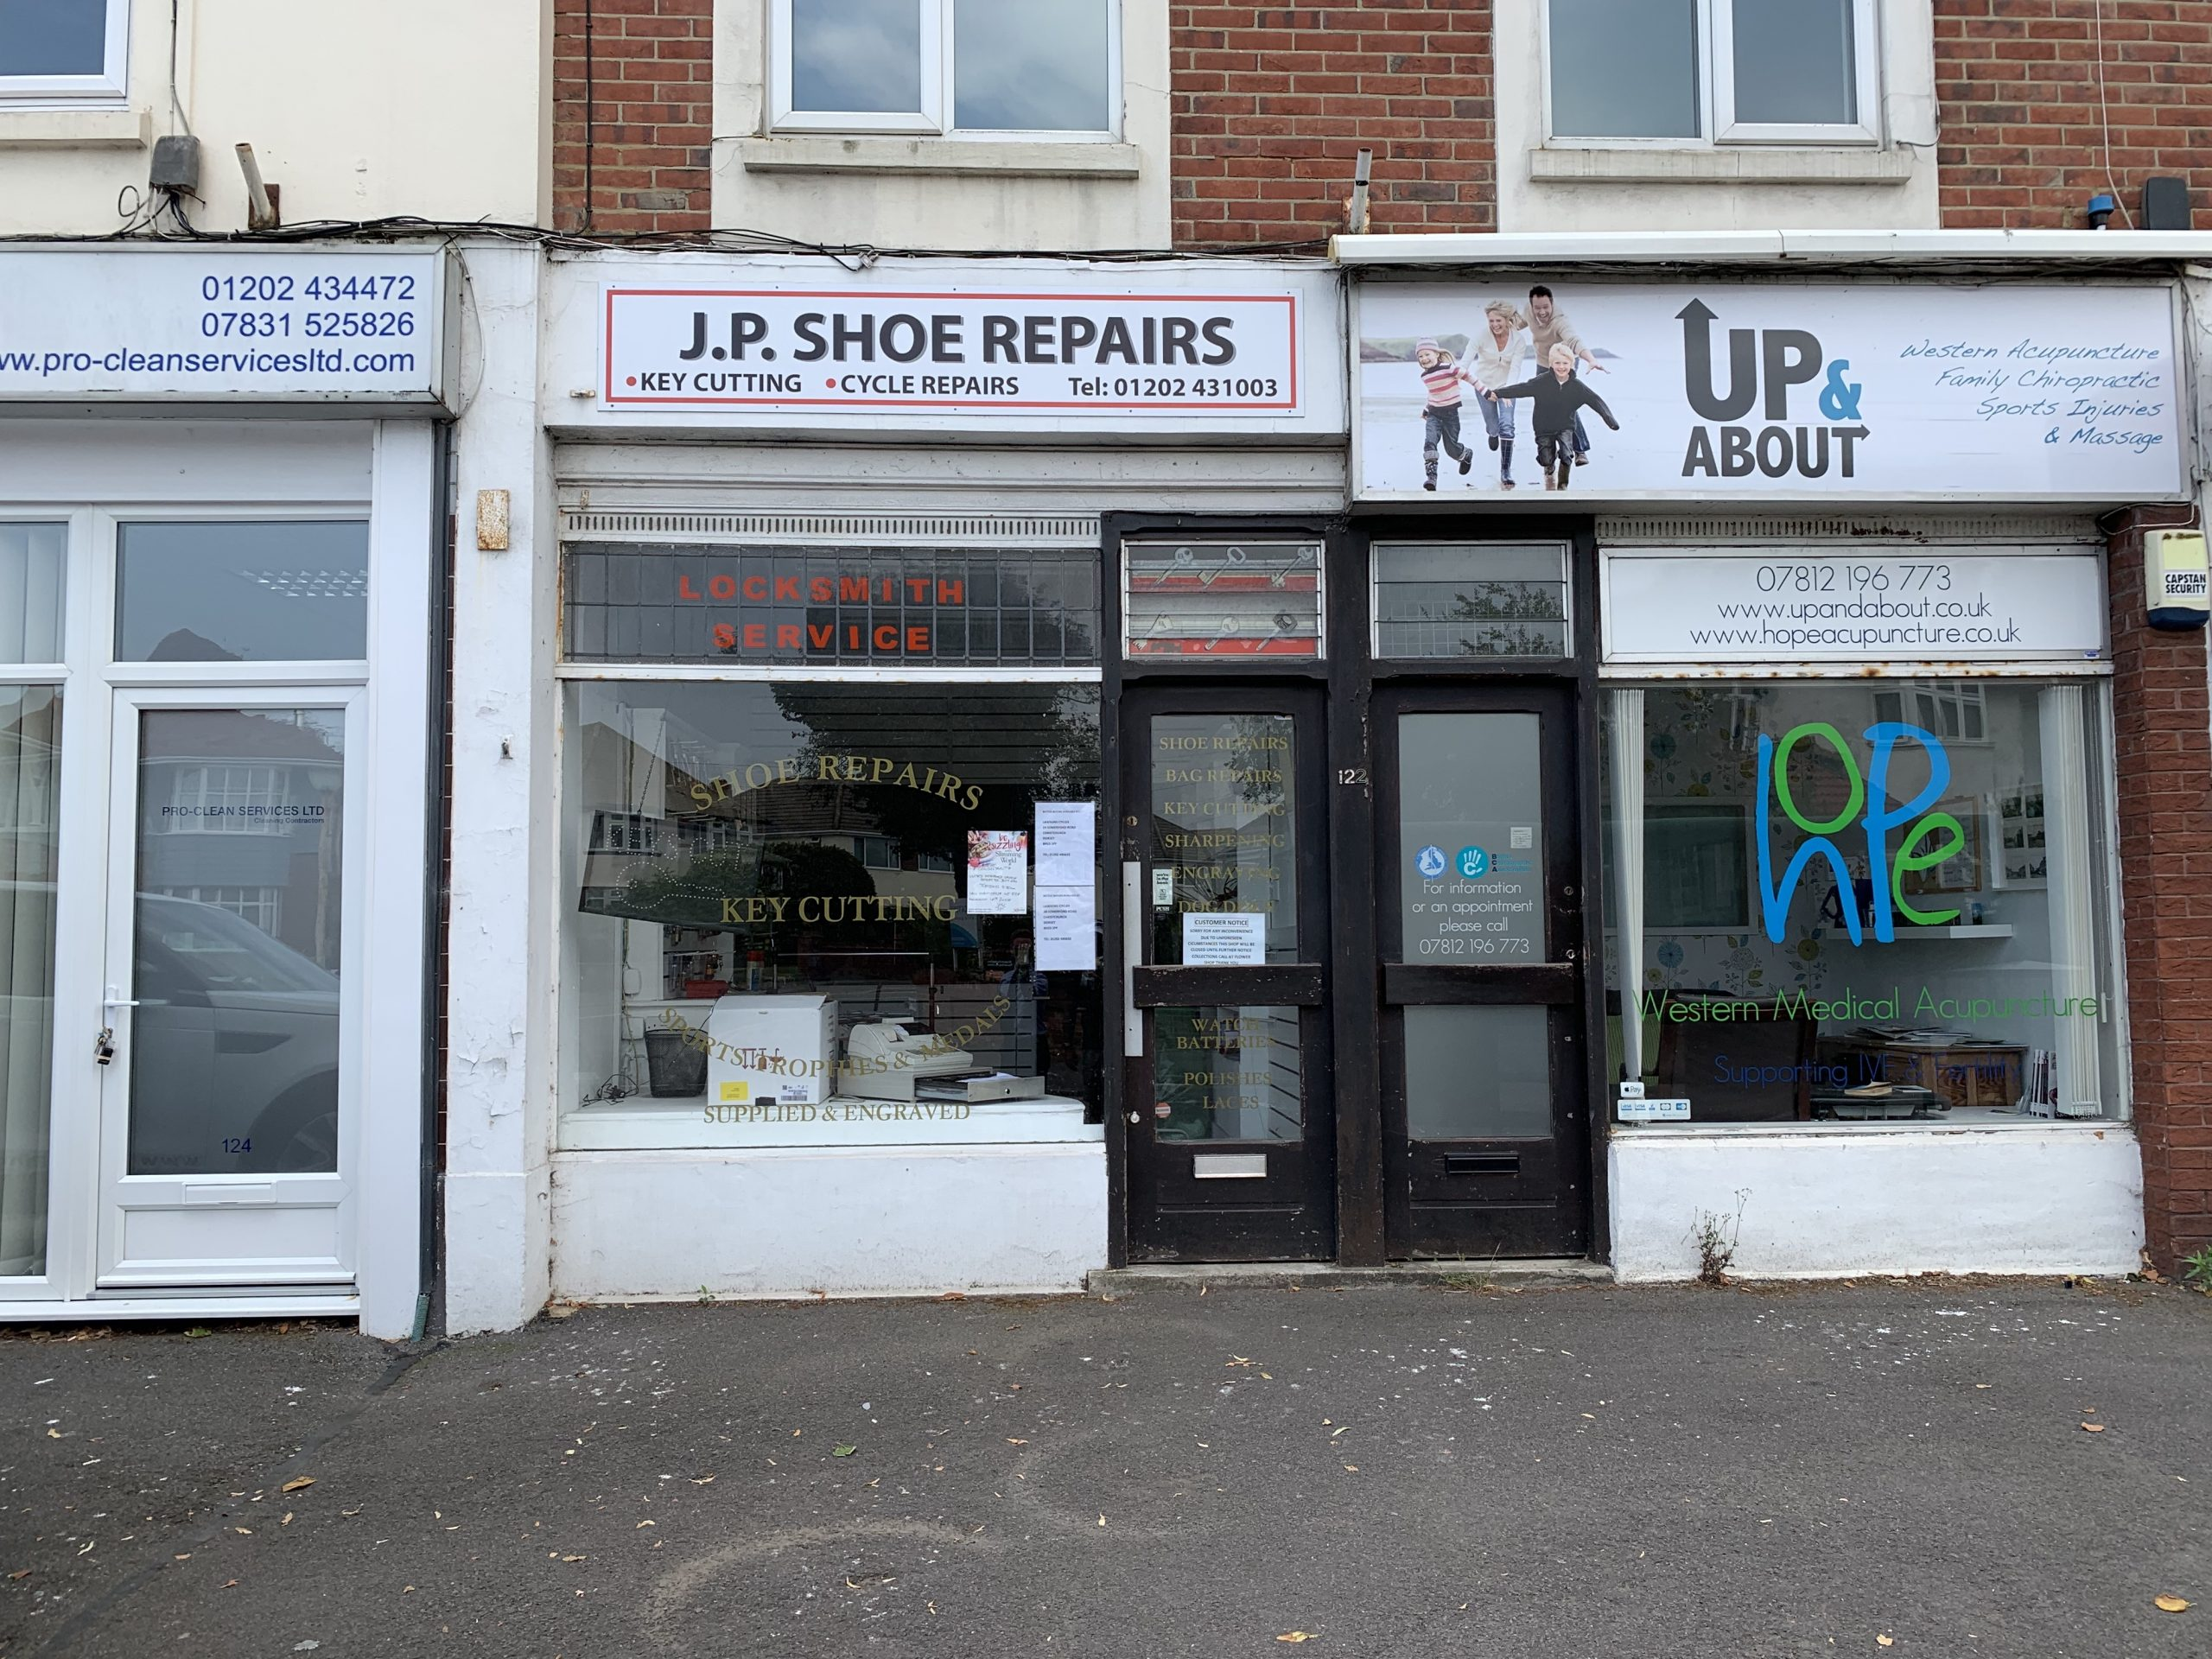 LOCK UP SHOP FOR SALE